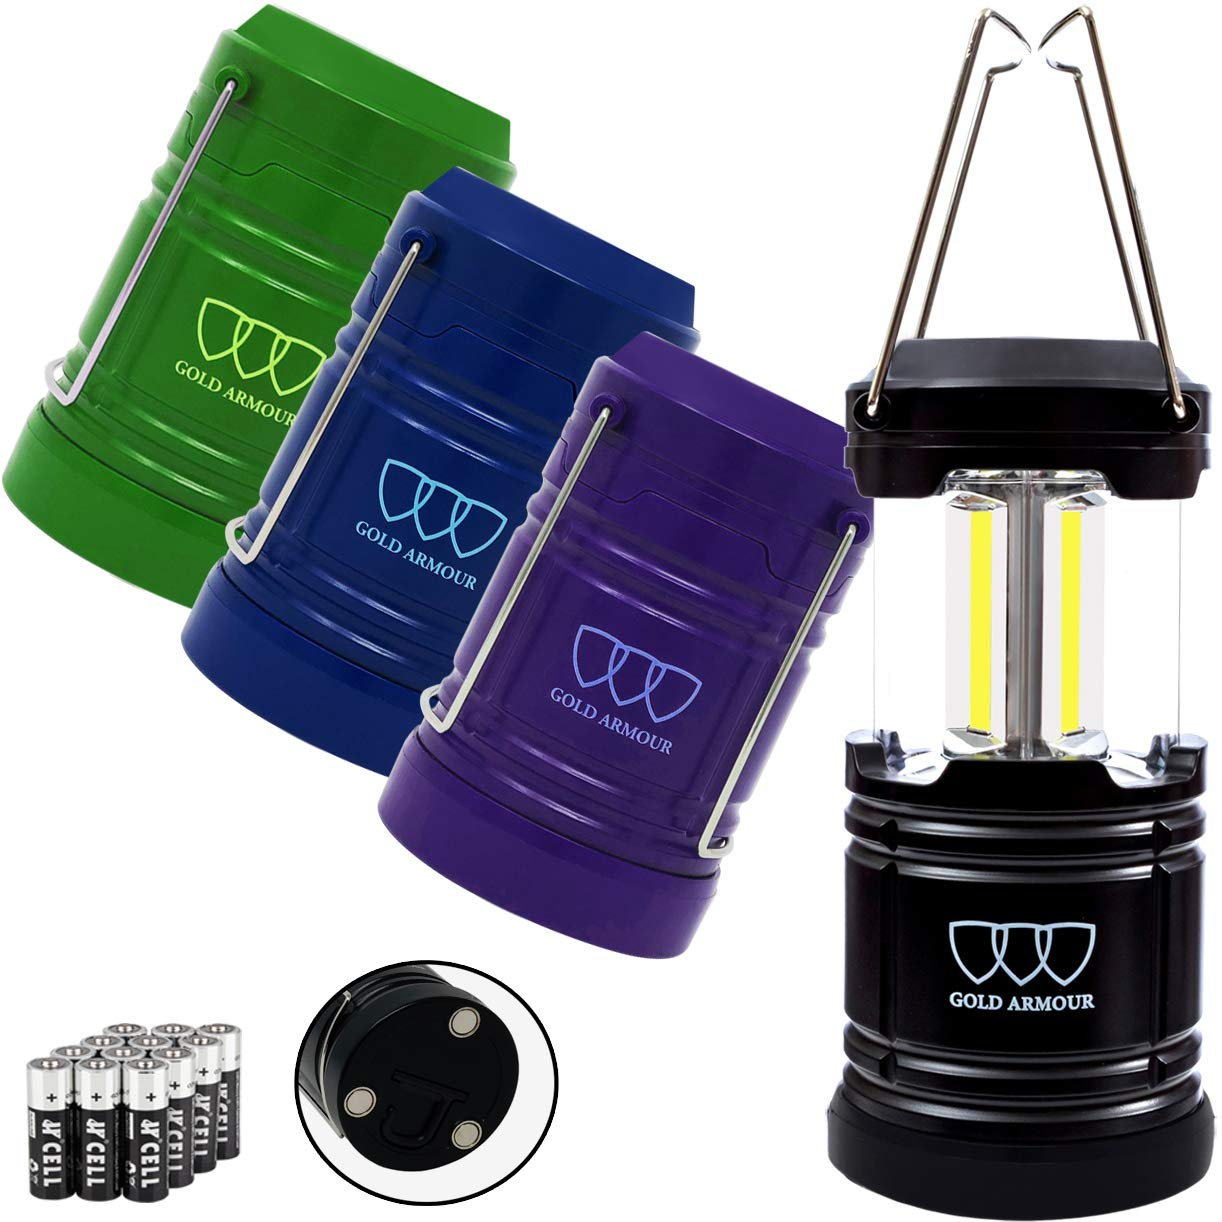 Gold Armour 4 Pack Portable Led Camping Lantern Flashlight with Magnetic Base - Emits 500 Lumens - Survival Kit for Emergency, Hurricane, Power Outage 12 aa Batteries Included (Multicolor)